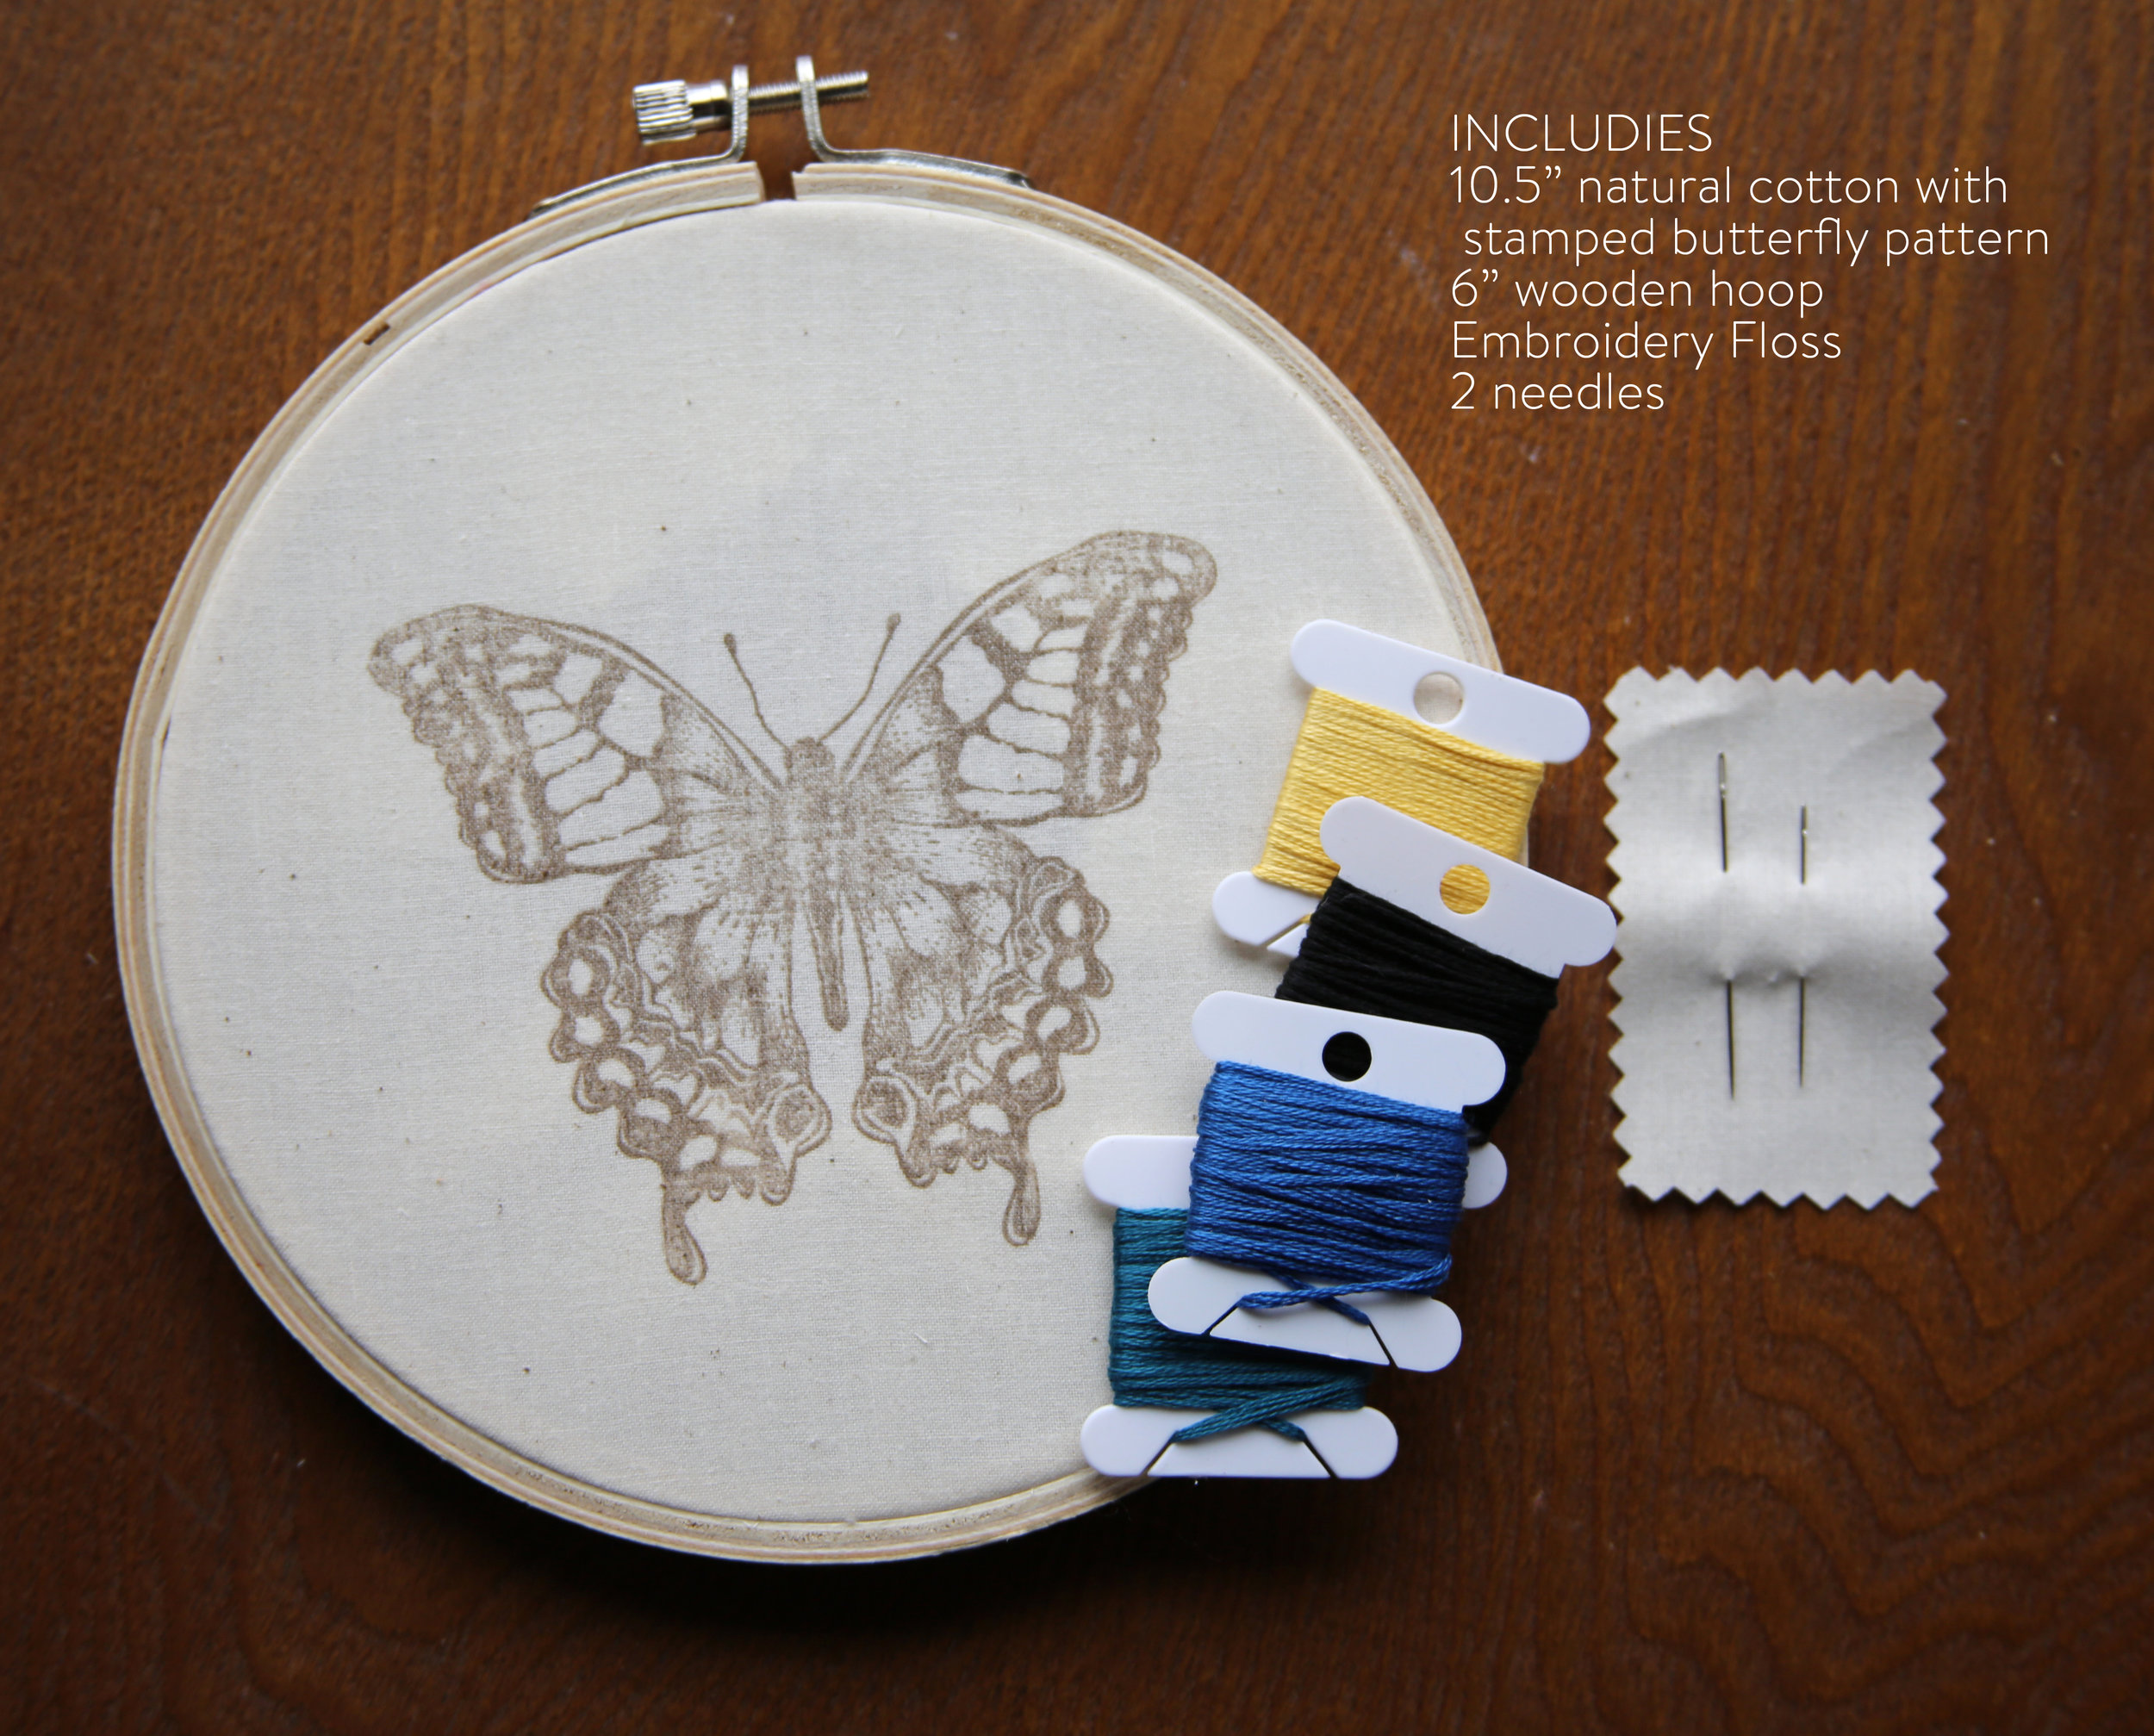 Butterfly Kit Contents 2.jpg